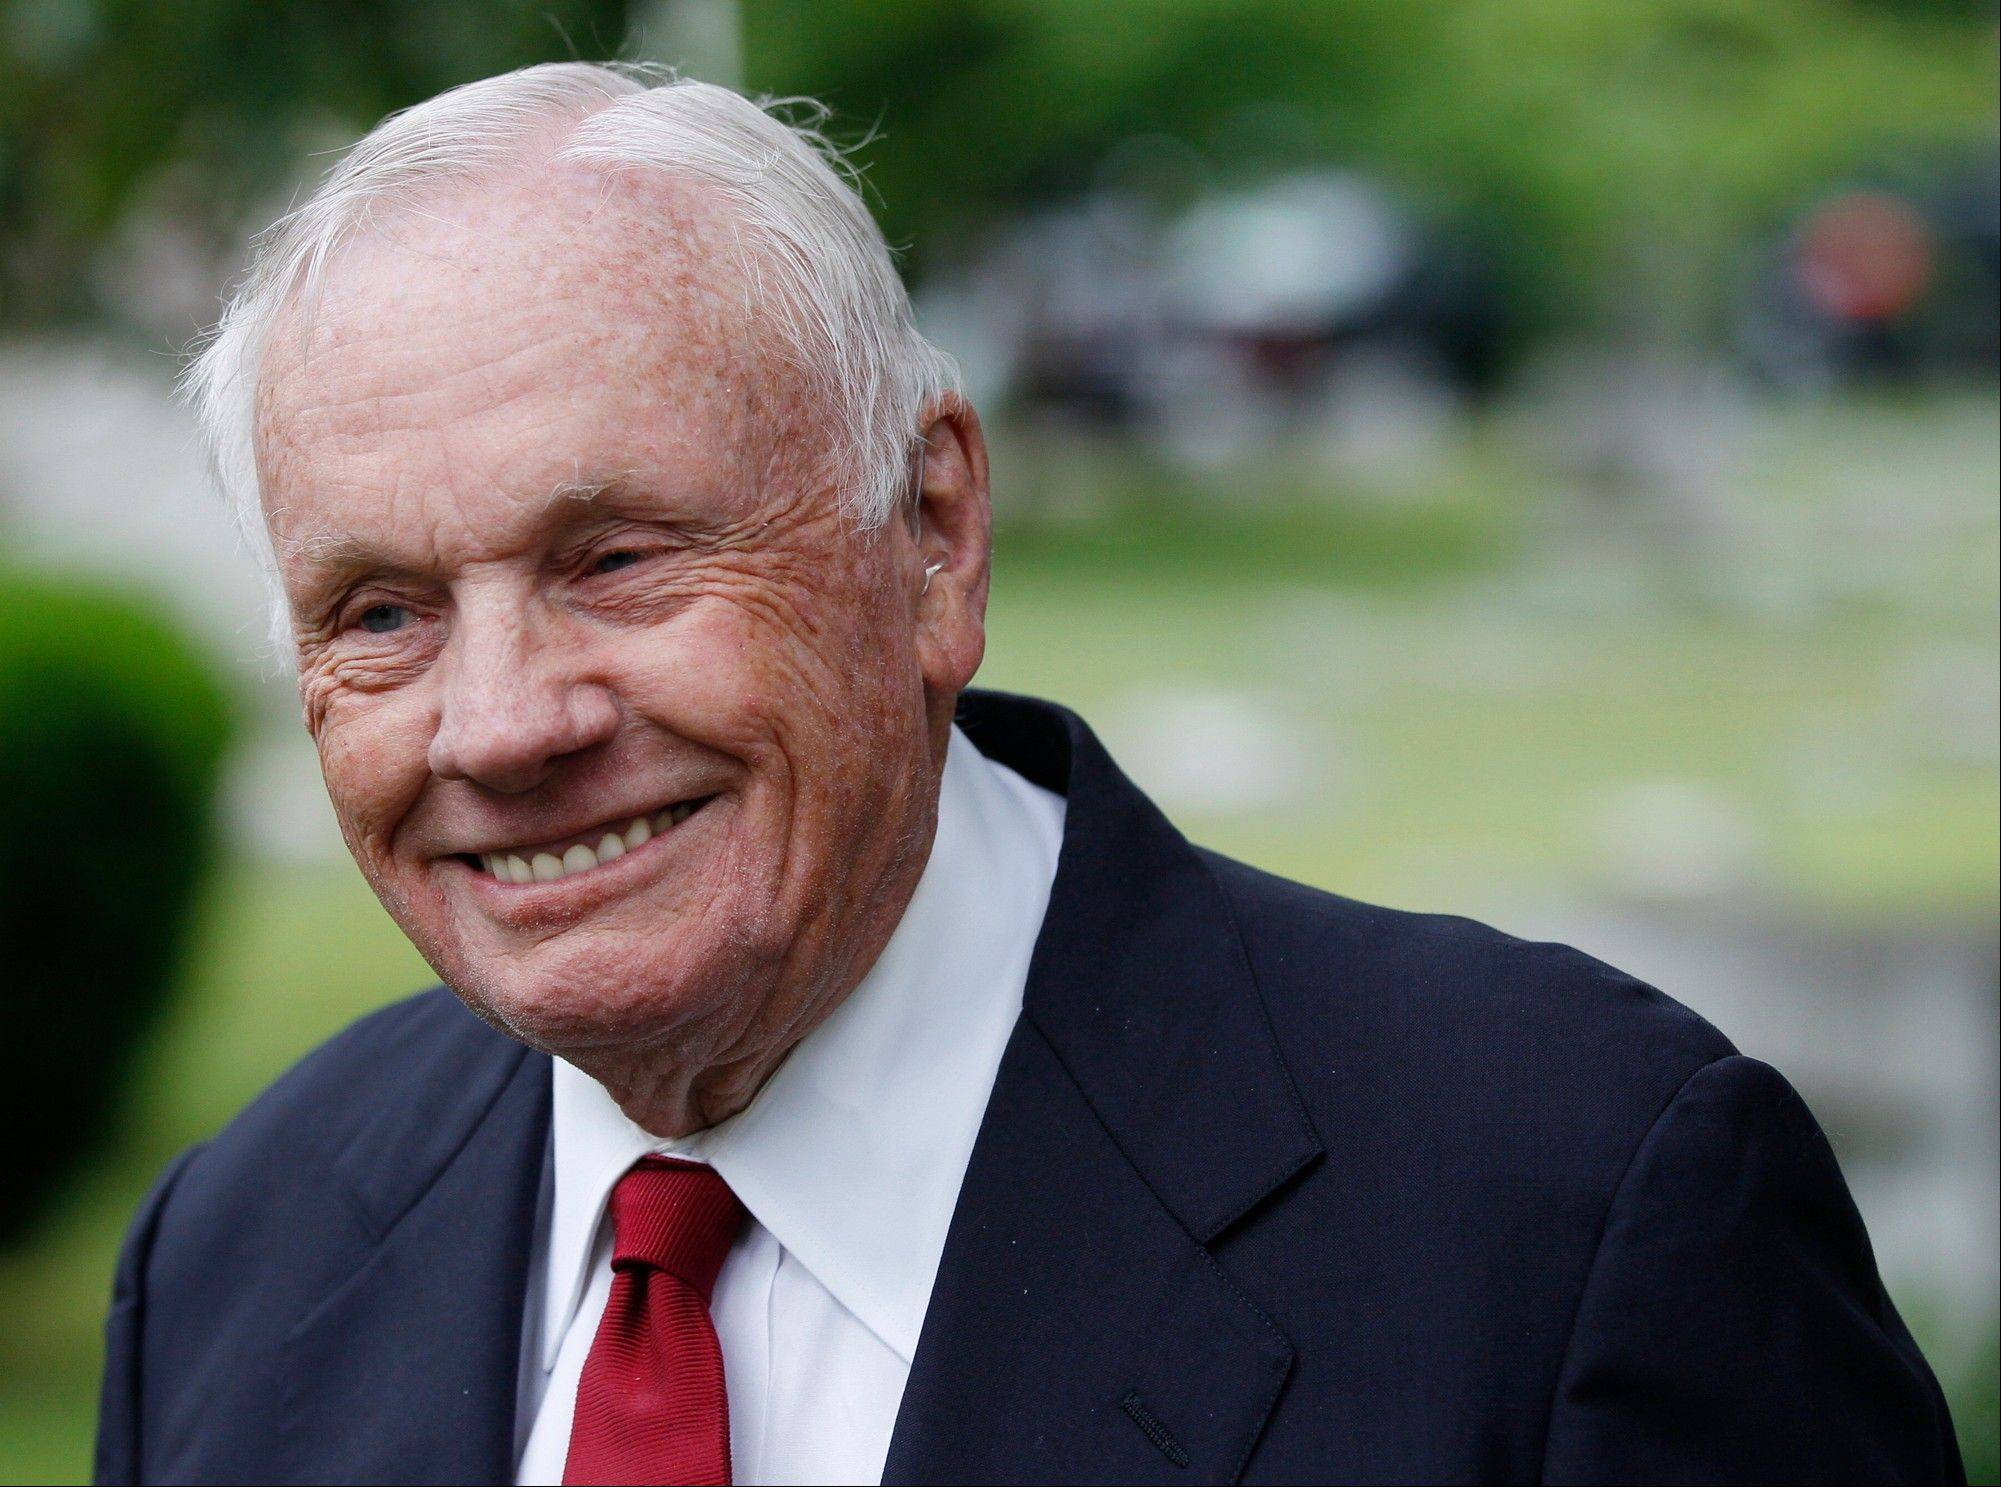 Purdue University plans to honor graduate Neil Armstrong's achievements with a campus memorial service.